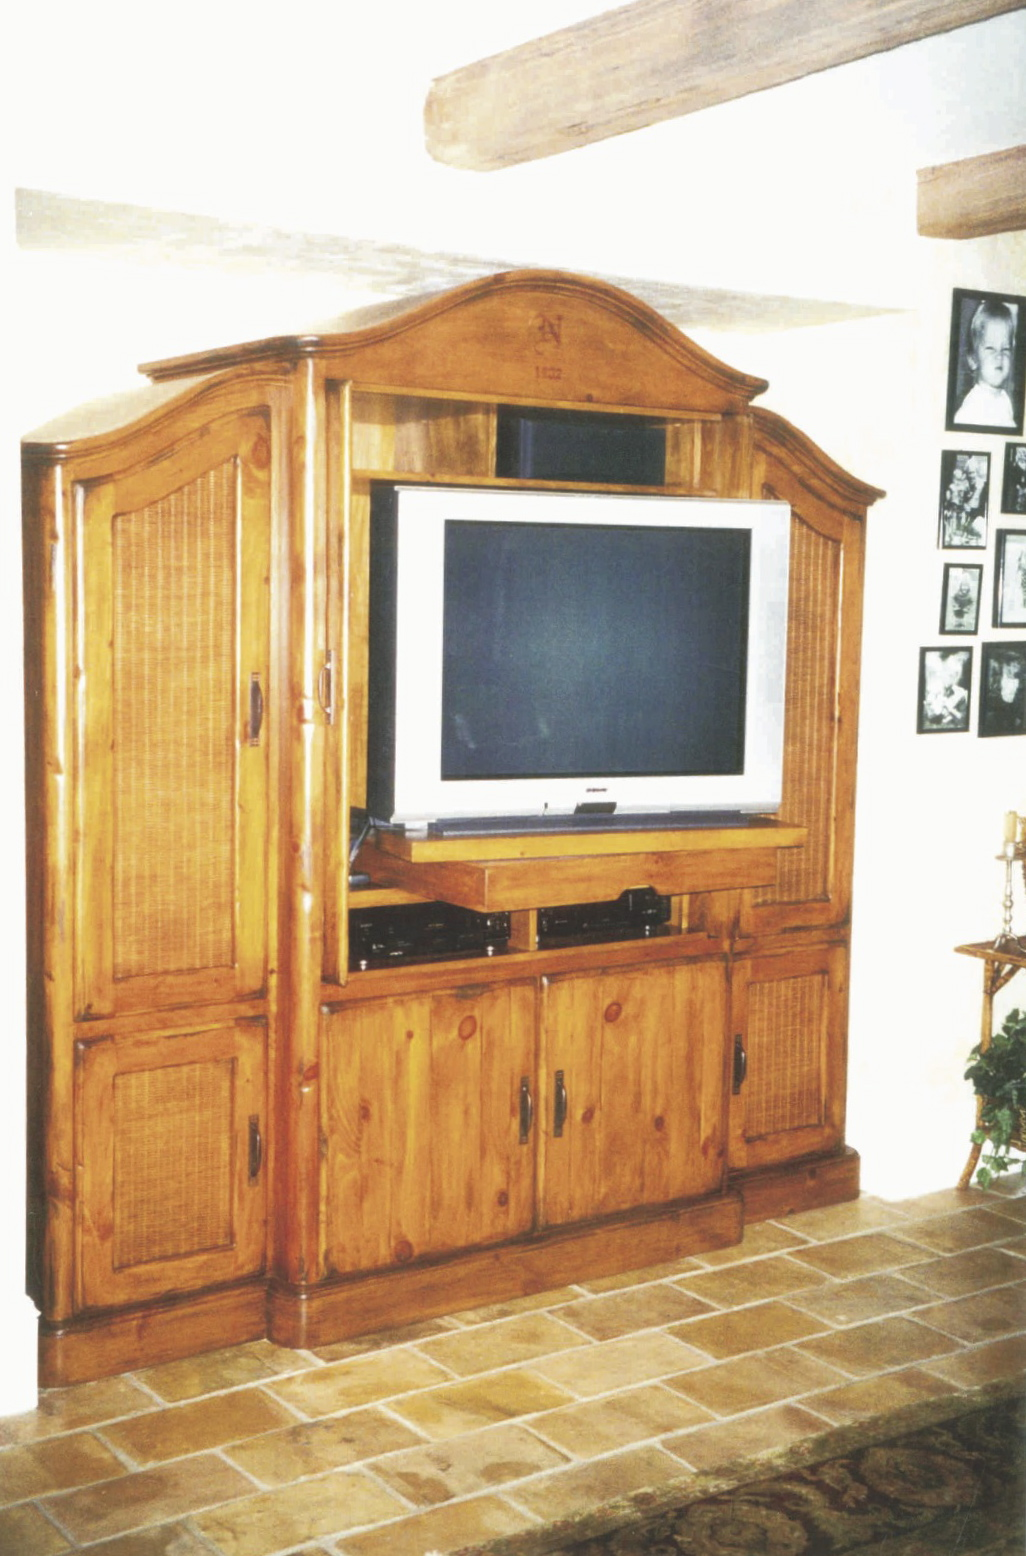 Armoire type TV/AV, storage, dining area cabinet - Jupiter Island